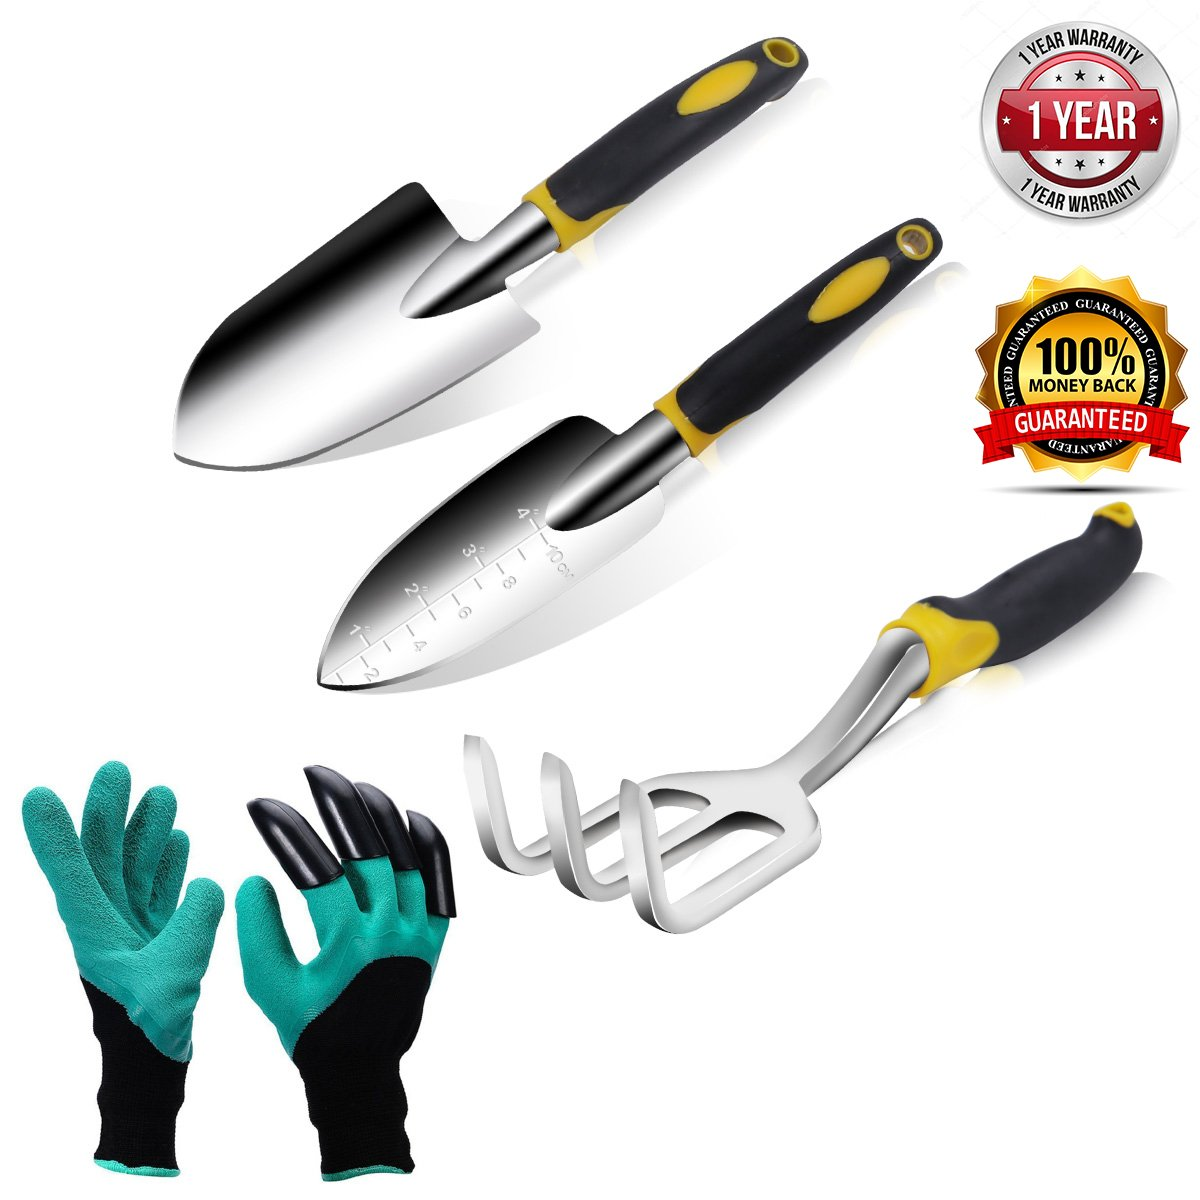 OLD WOOD Garden Tools Set and Garden Gloves with Claws for Women and Men Garden Hand Tools Gardening Tool Kit includes Trowel, Transplant Trowel and Cultivator Garden Gift Ideas